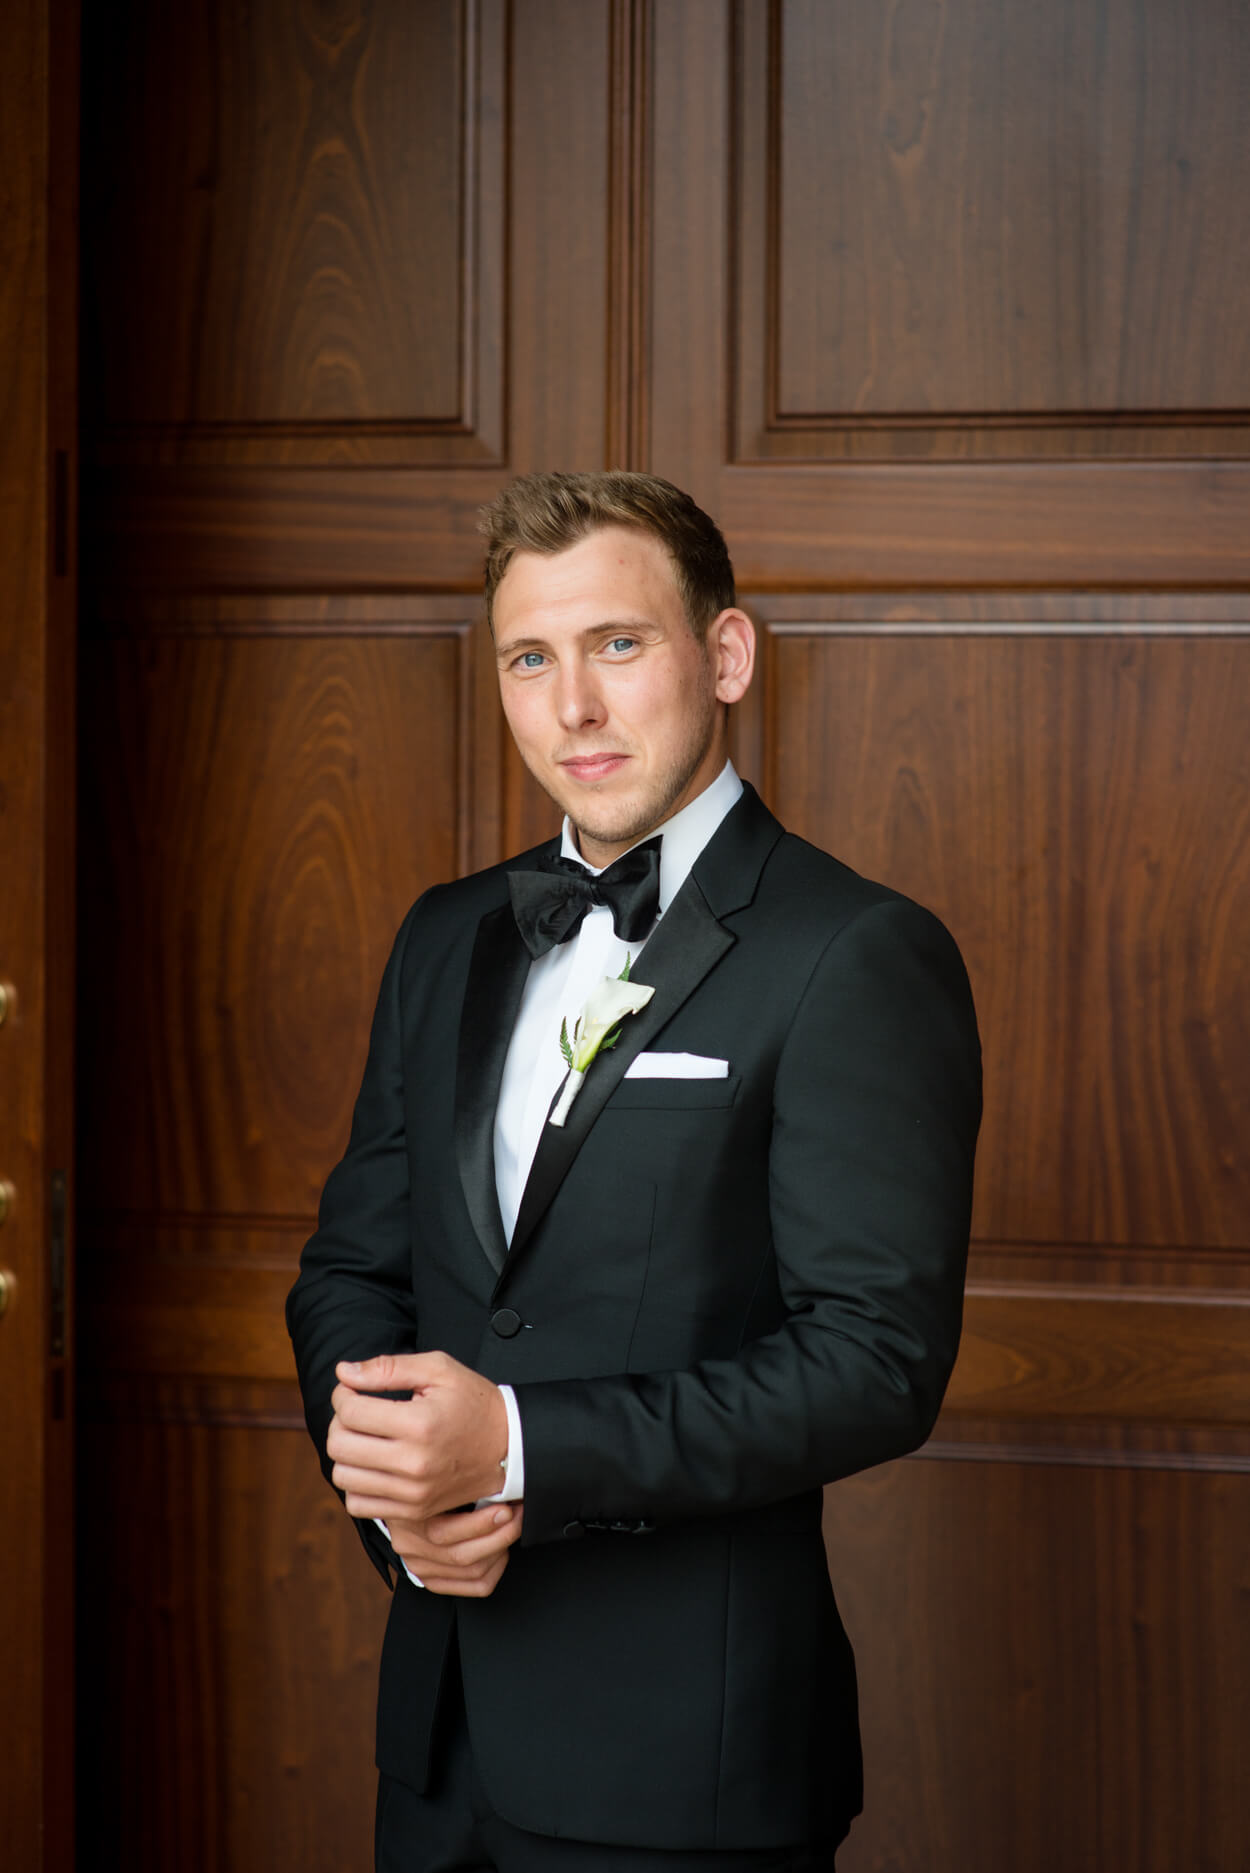 groom portrait black tie church wedding